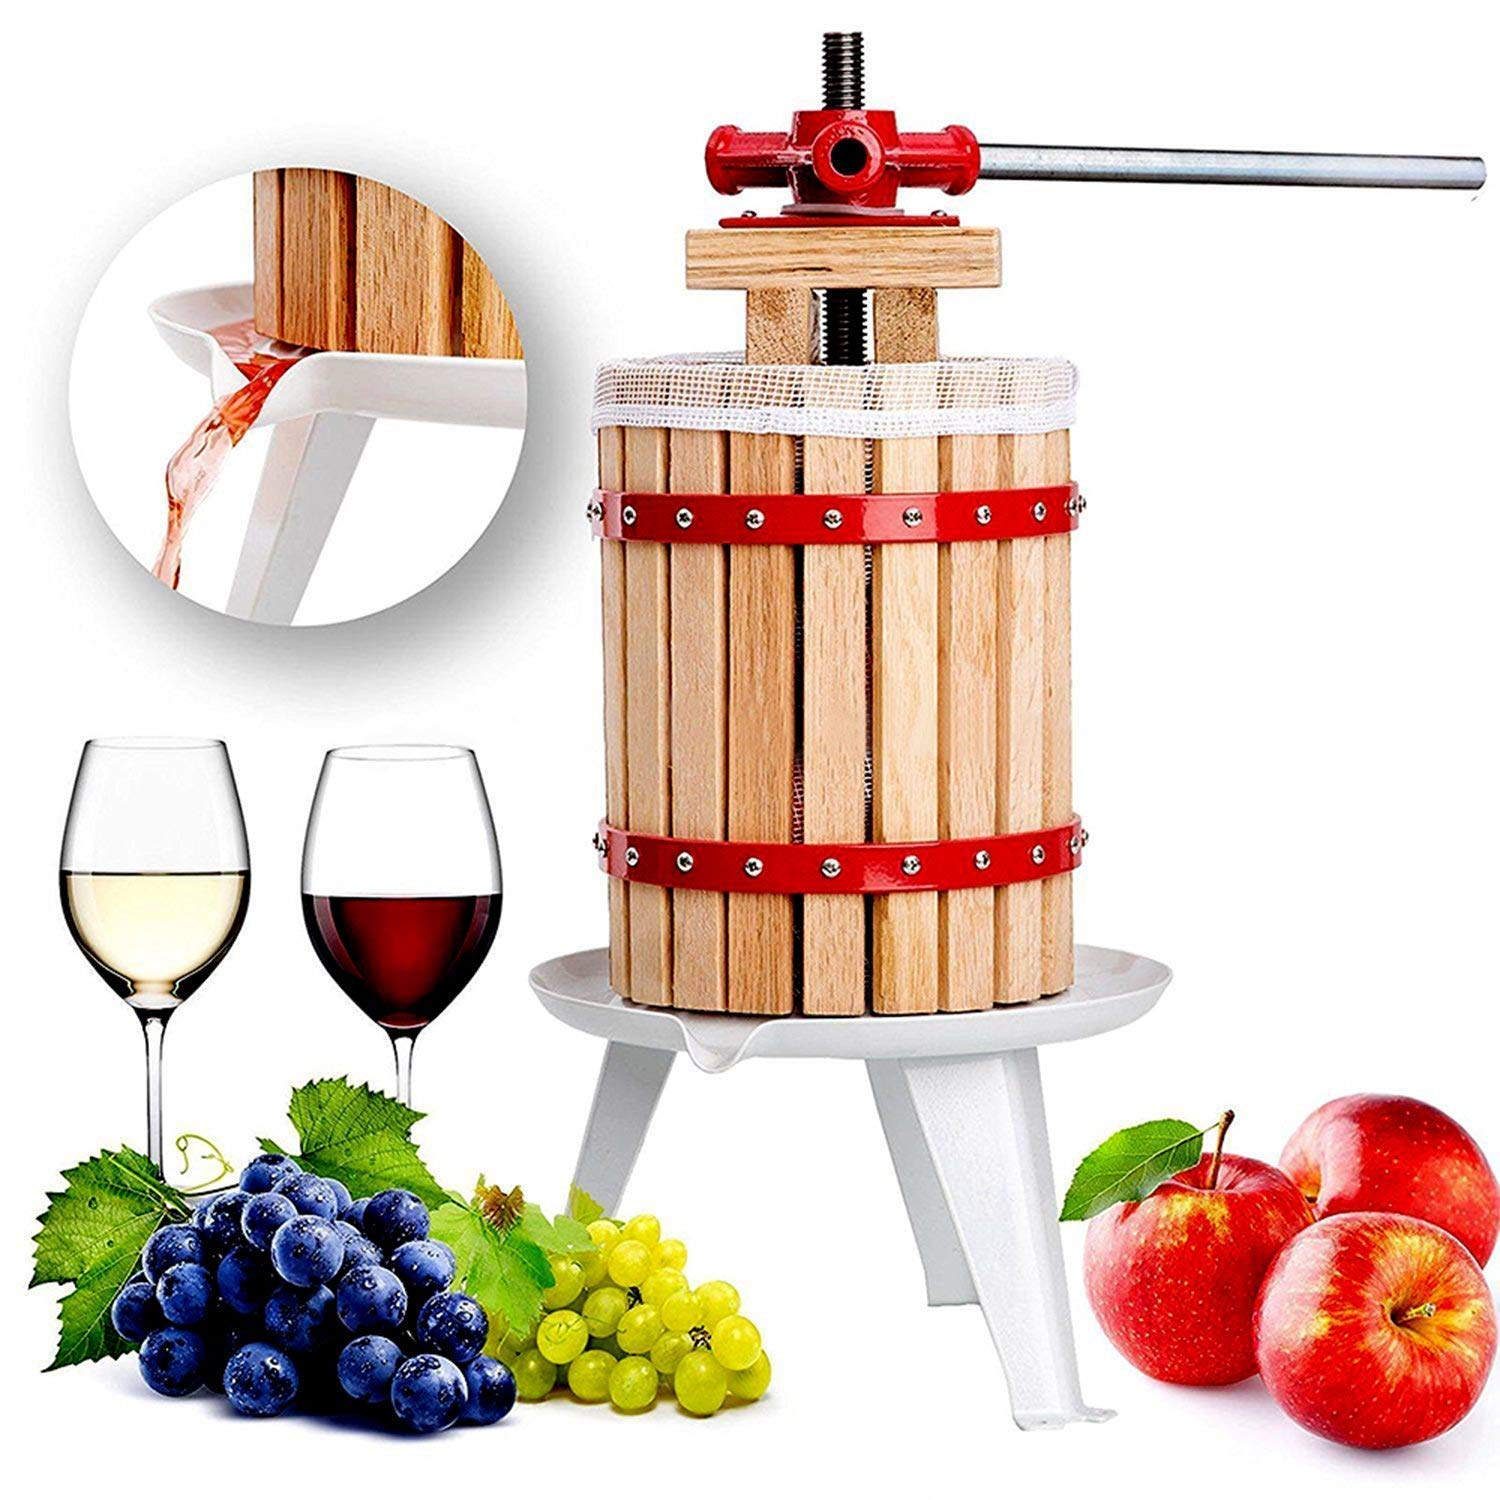 Fruit and Wine Press 1.6 Gallon Cider Apple Grape Crusher Juice Maker Tool Wood